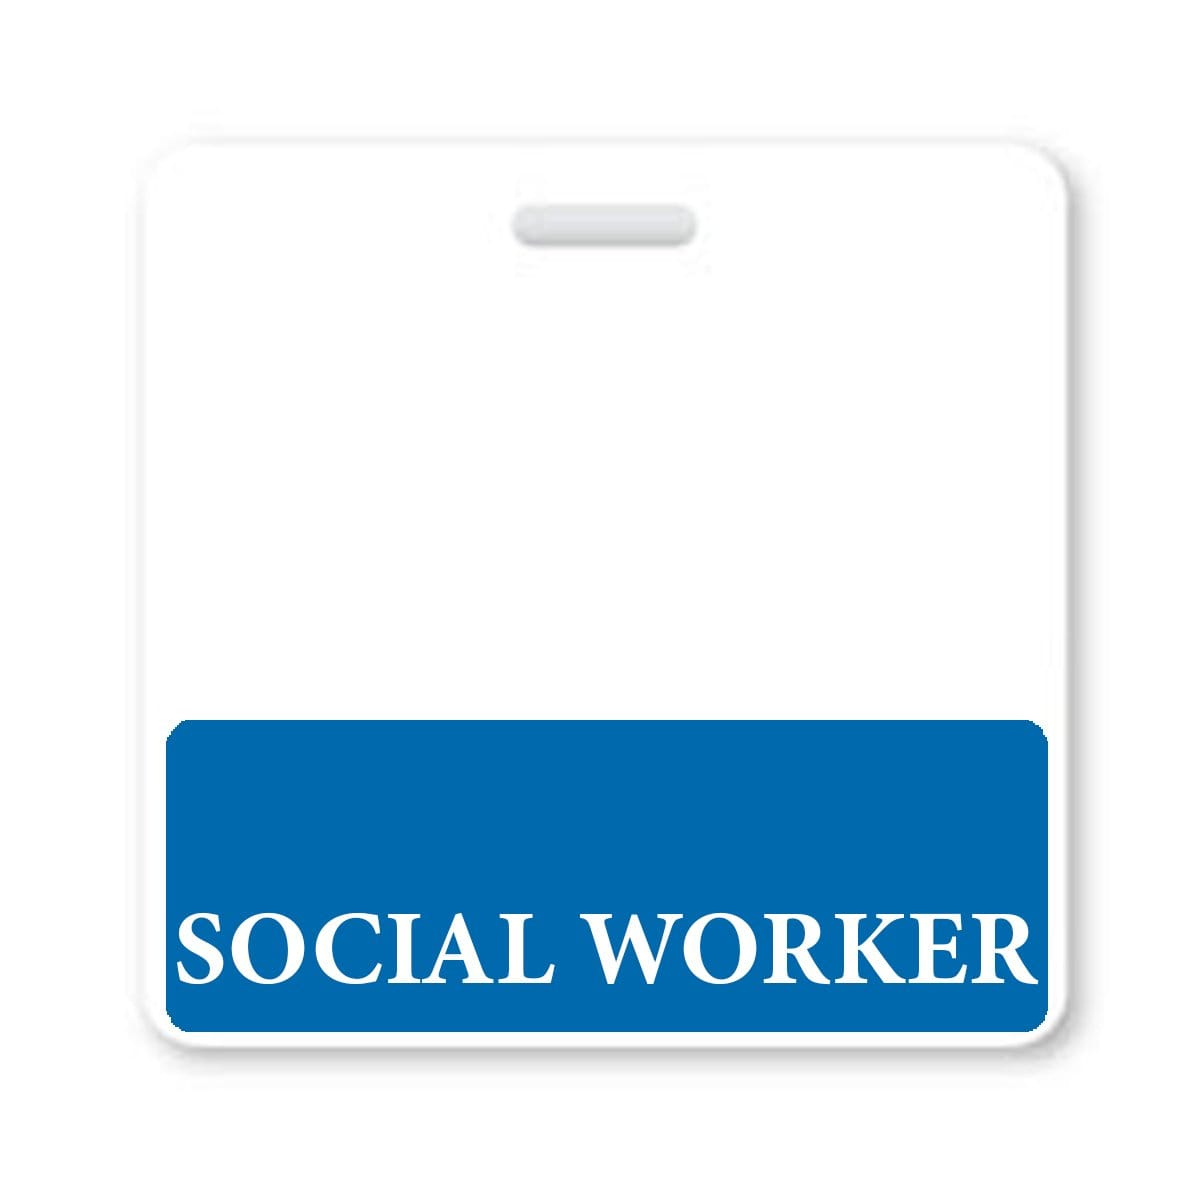 SOCIAL WORKER Horizontal Badge Buddy with Blue Border